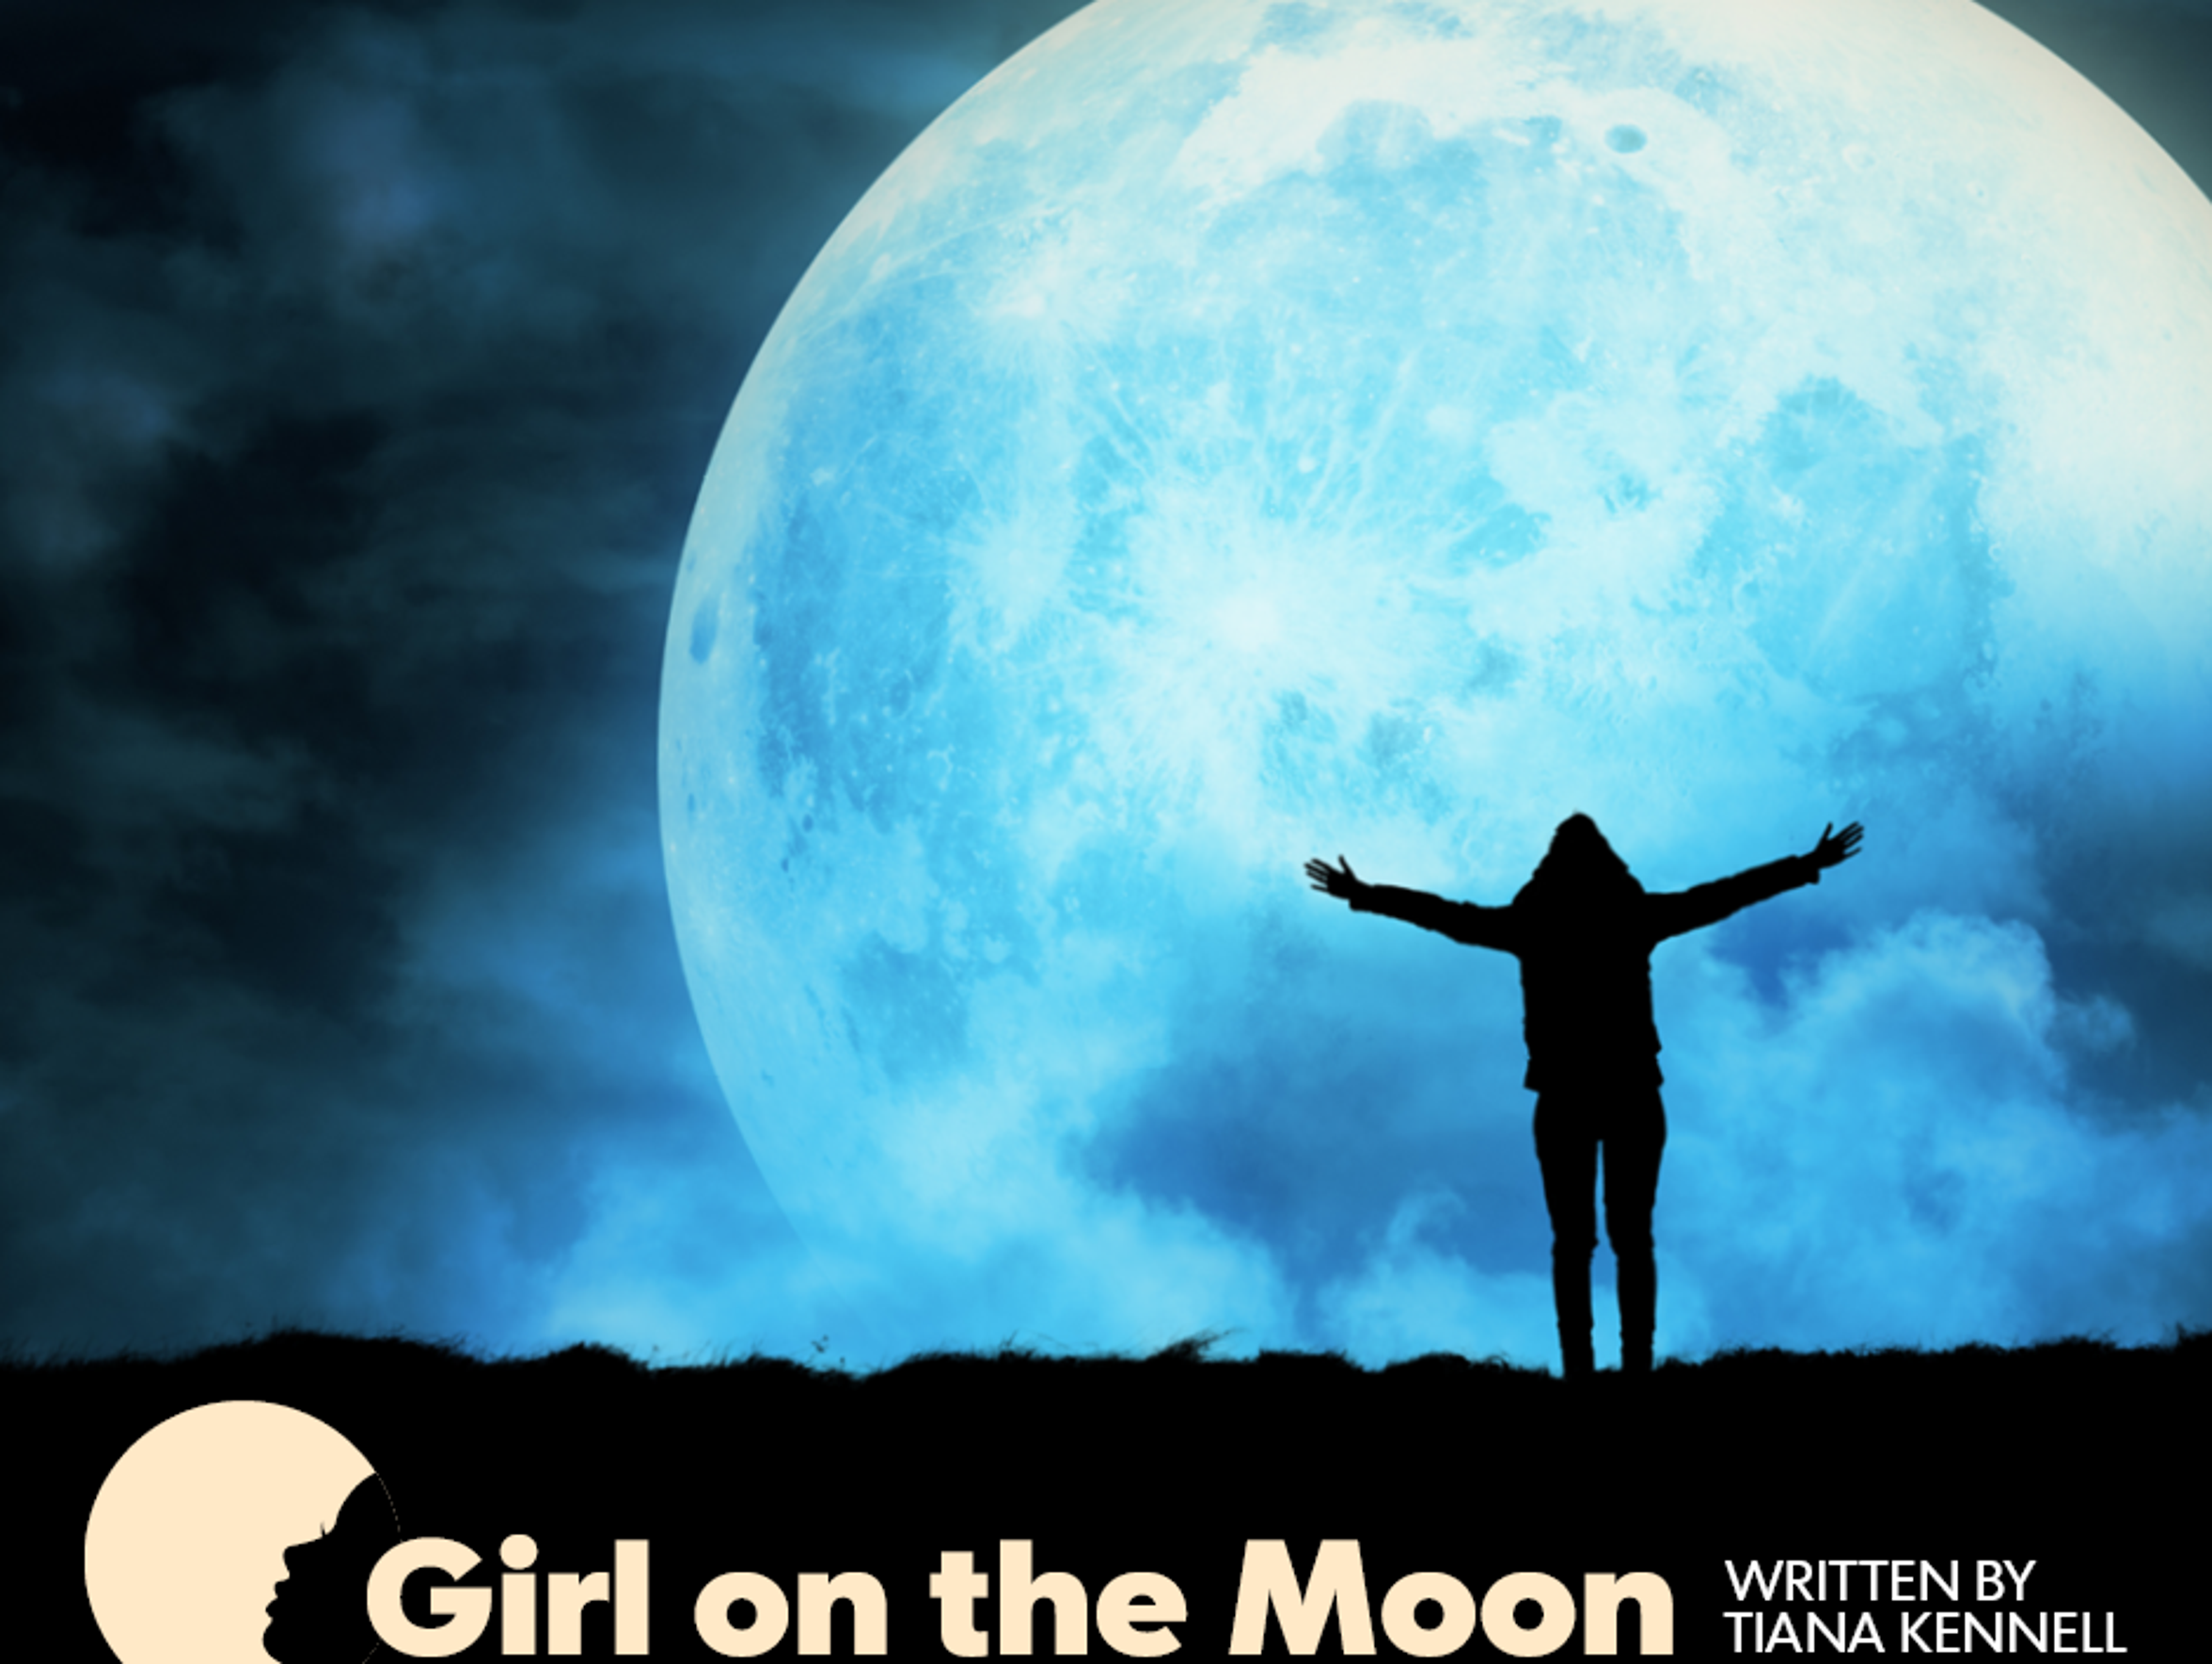 Girl on the Moon is a 2016 fictional holiday series